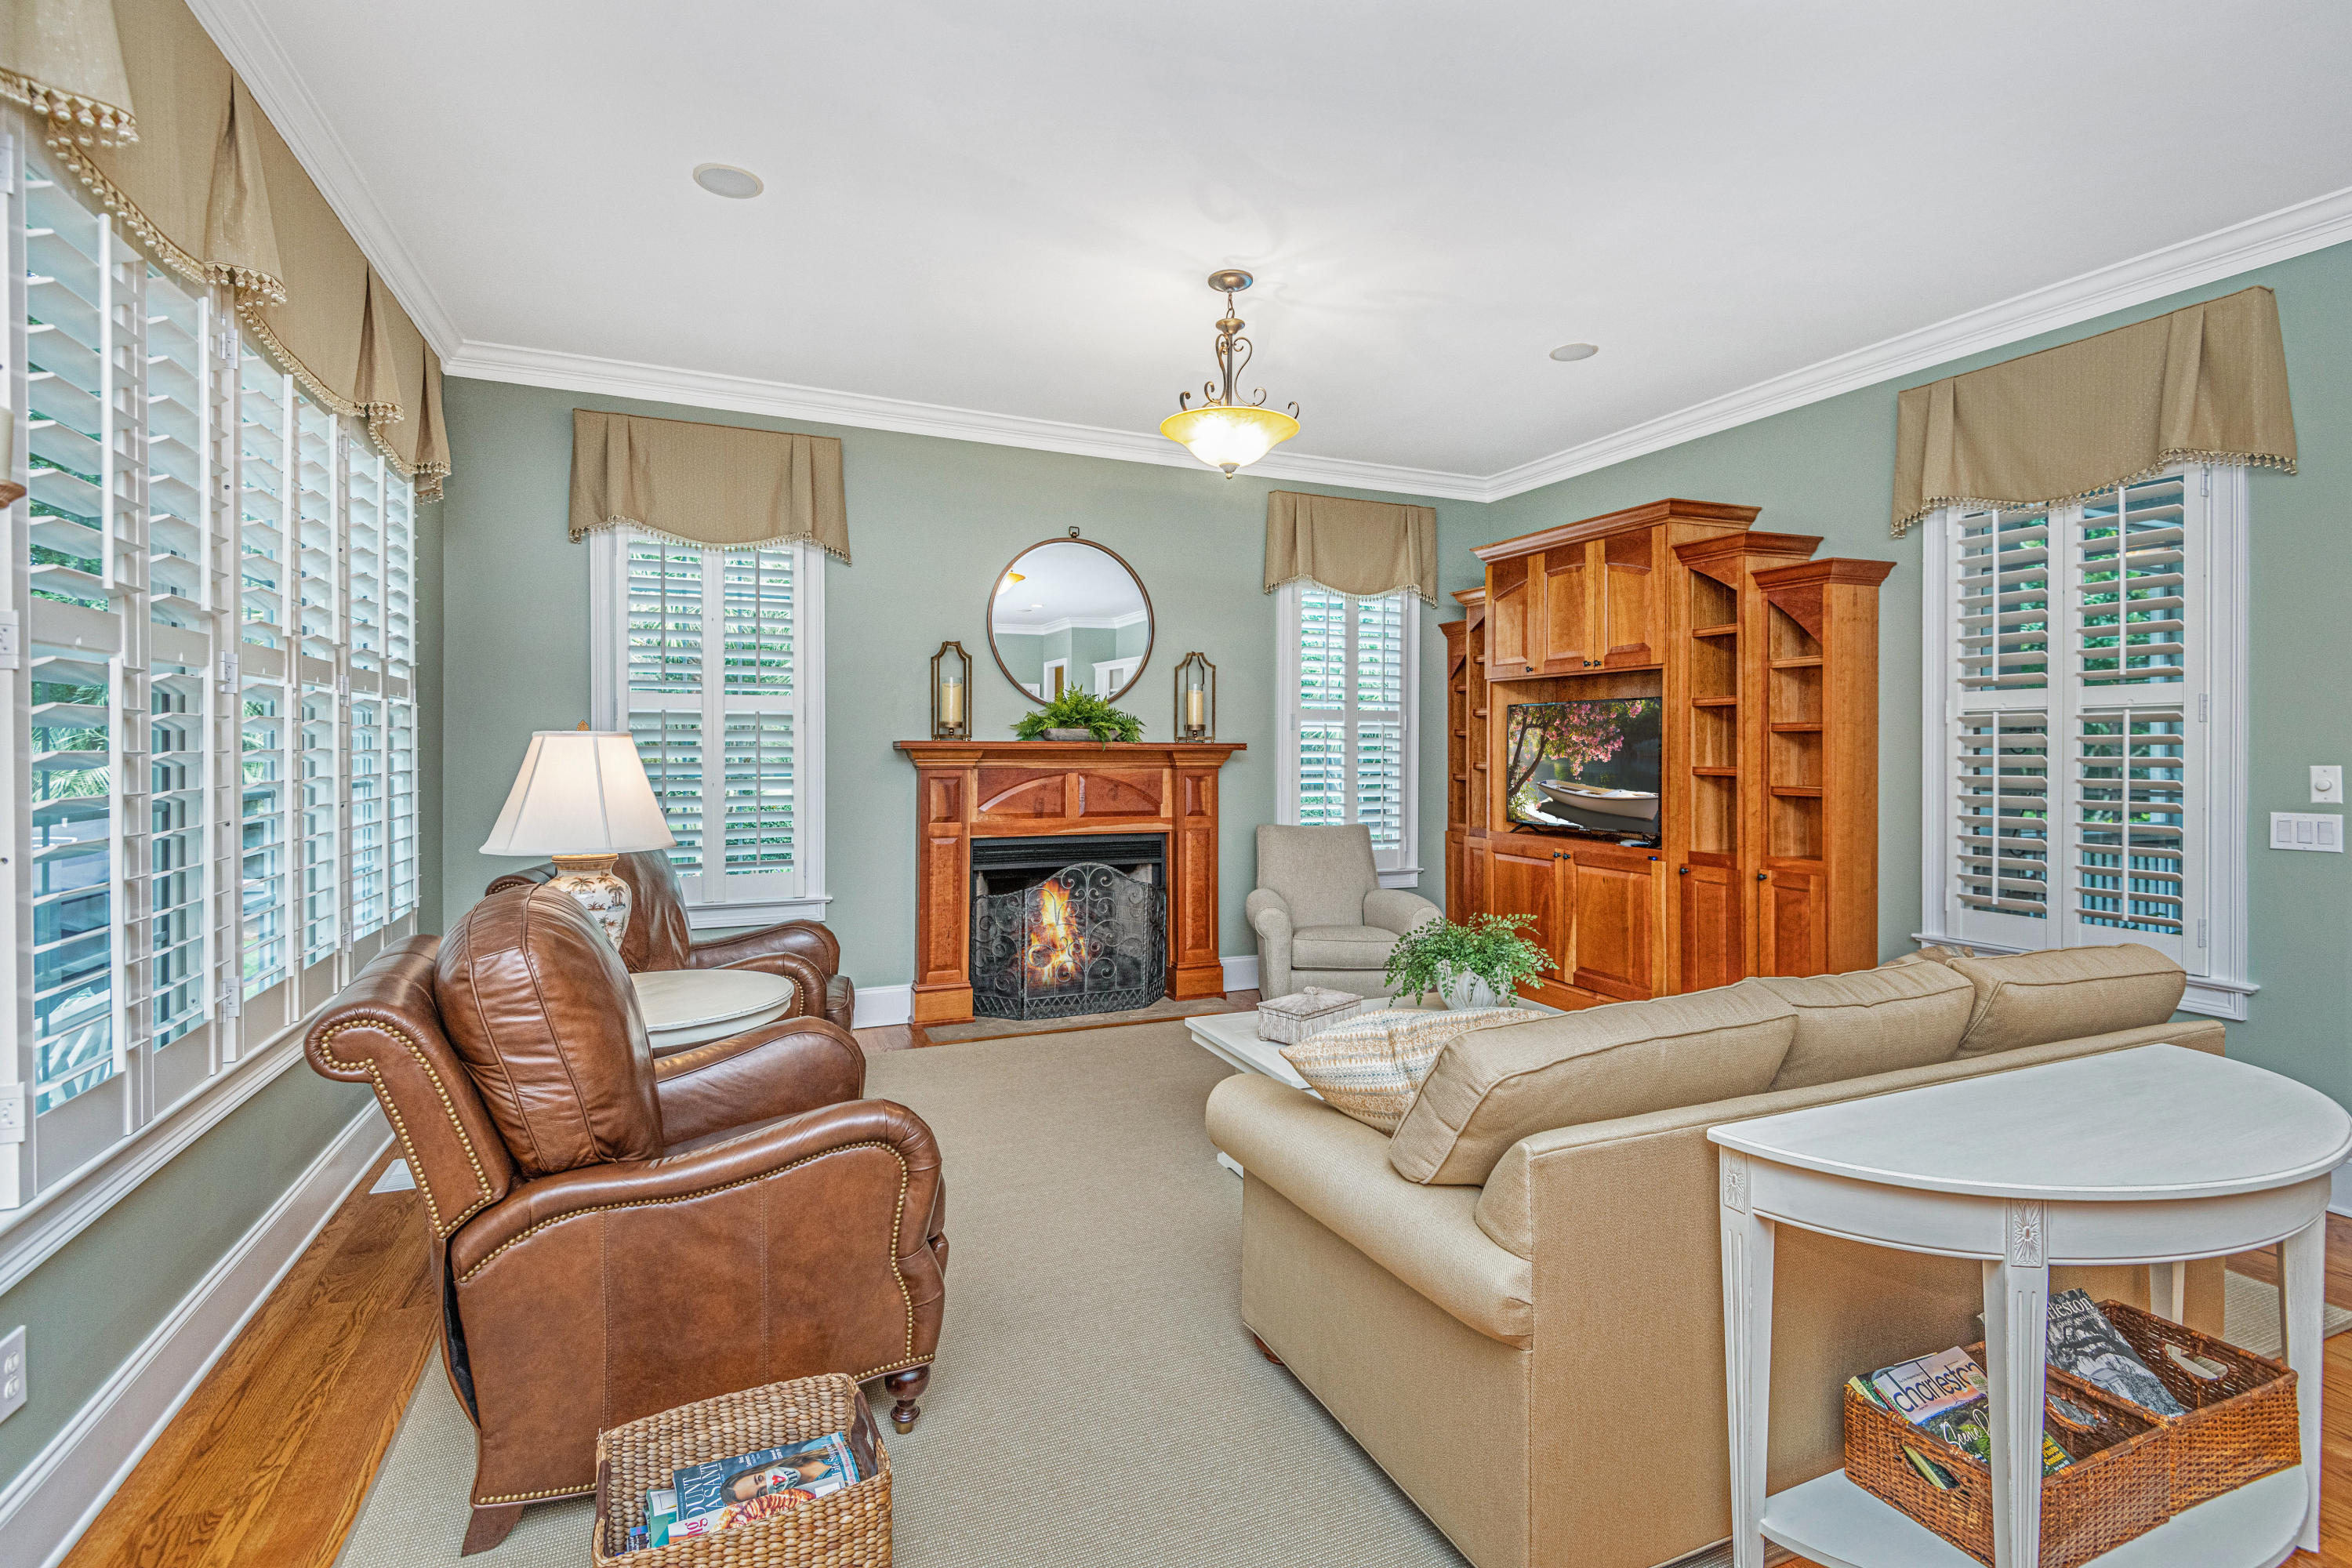 Dunes West Homes For Sale - 1837 Shell Ring, Mount Pleasant, SC - 17